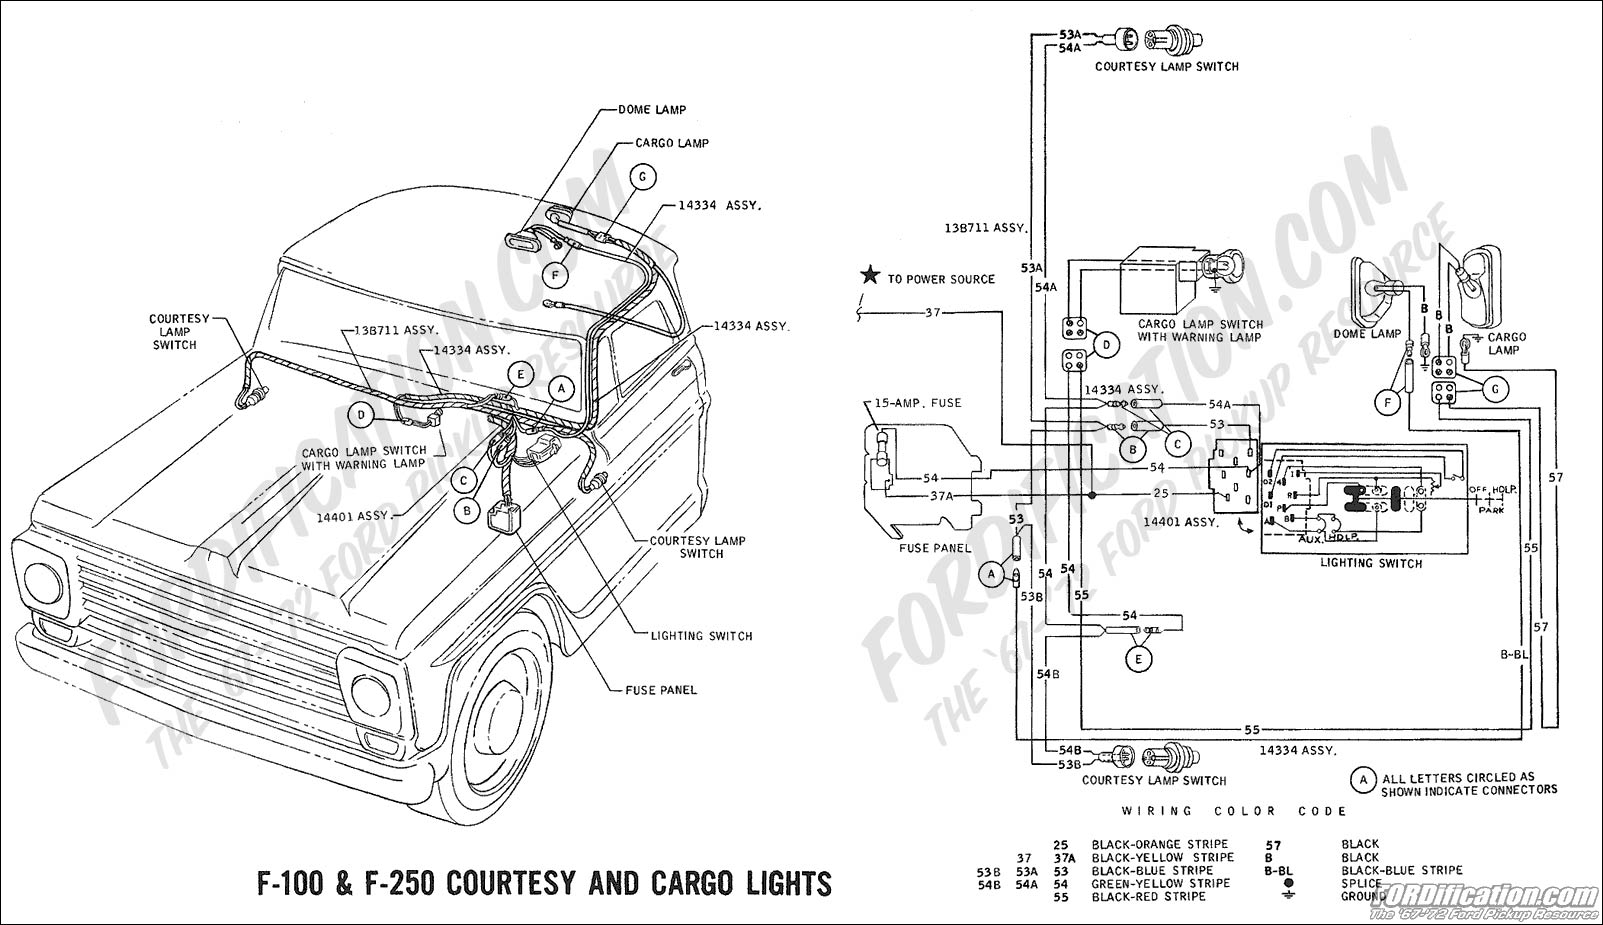 P 0900c15280062592 as well Chevrolet Silverado Gmt900 Mk2 Second Generation 2007 2014 Fuse Box Diagram moreover P 0900c15280052e55 likewise Wiper Motor Wiring Diagram Chevrolet besides Viewtopic. on 72 chevy truck wiring diagram